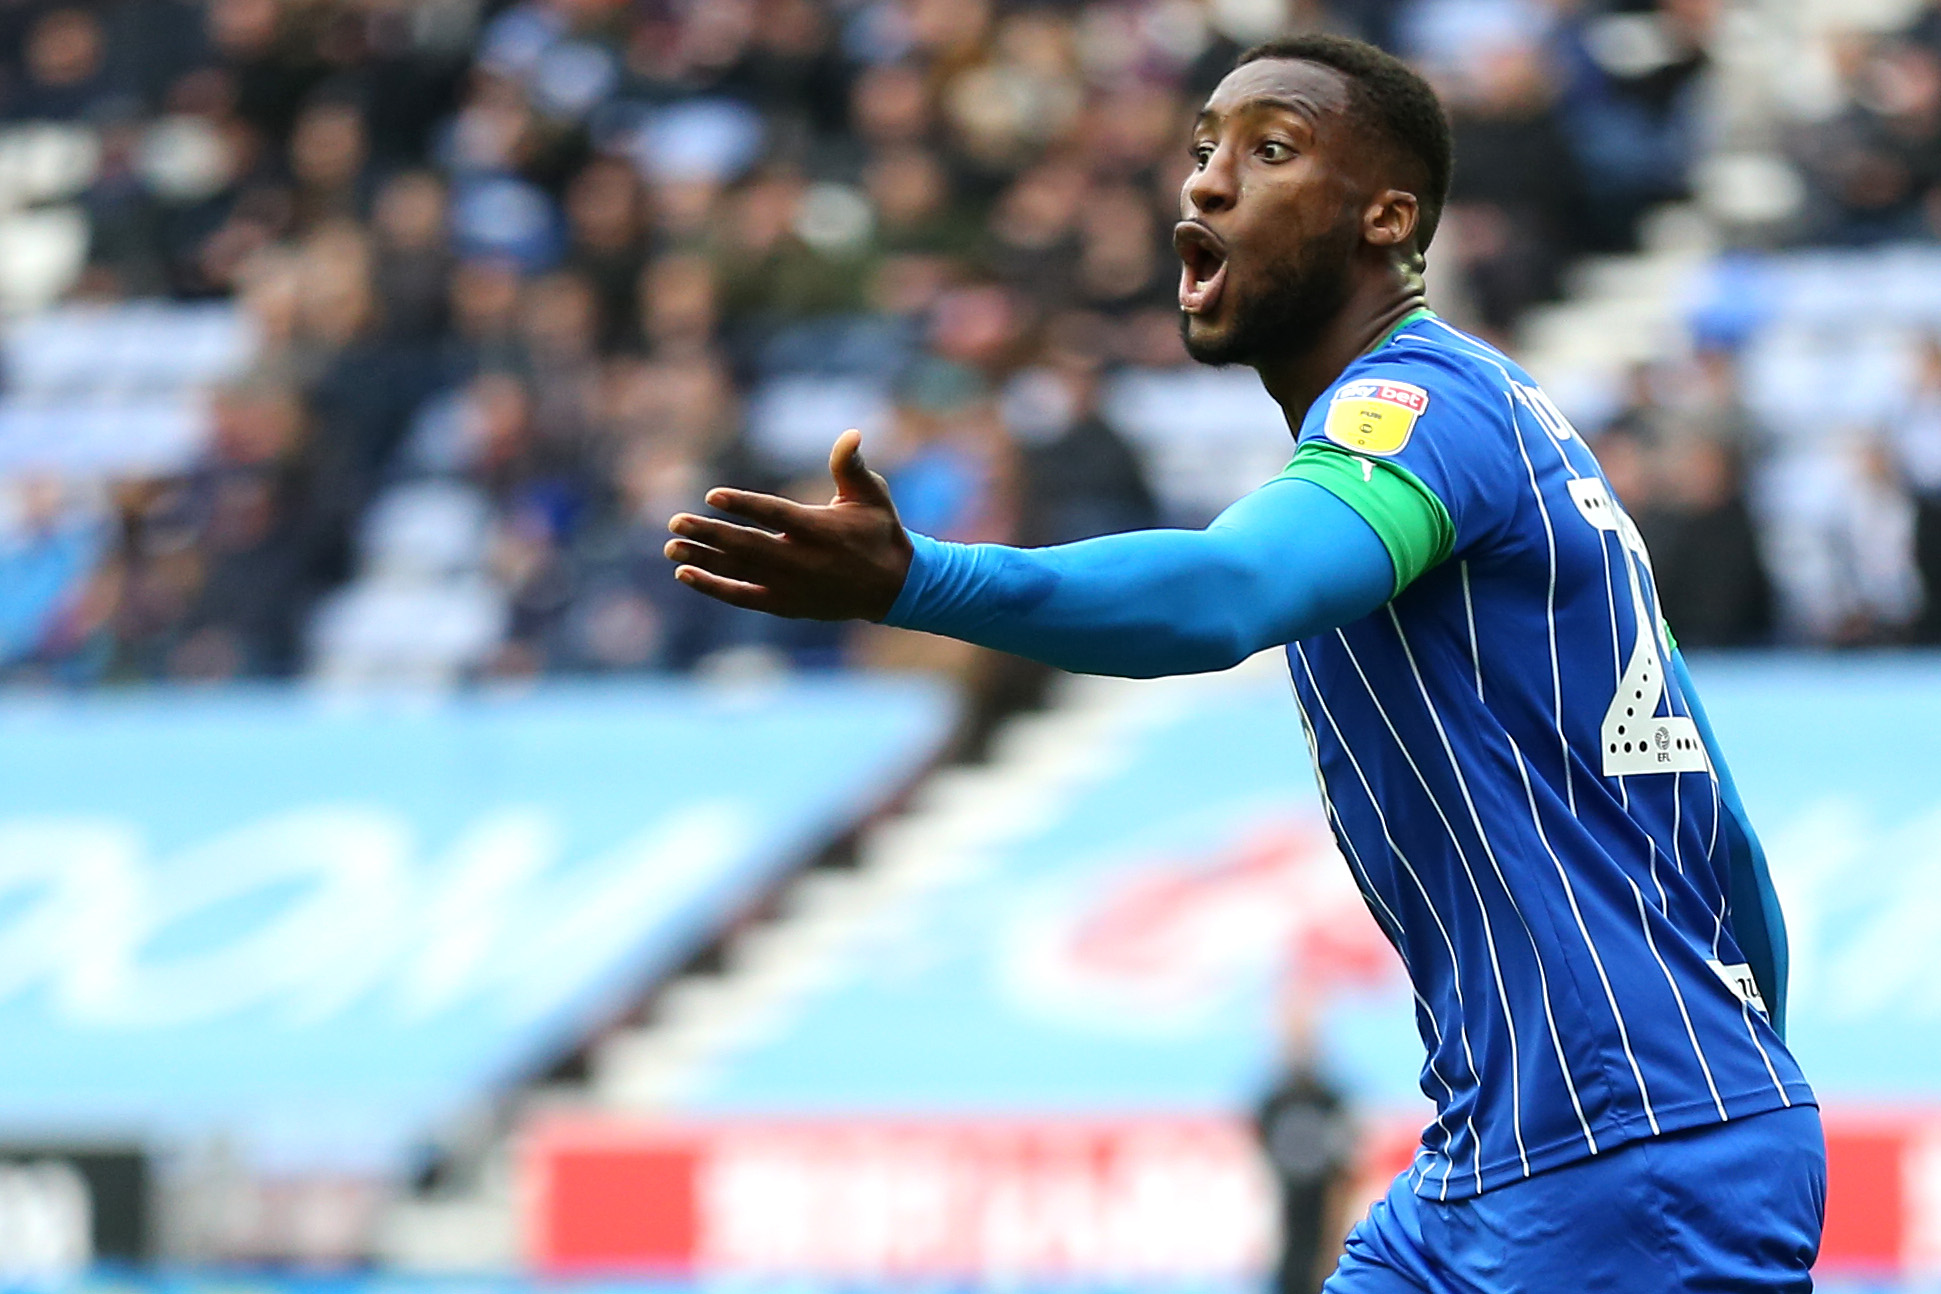 Wigan Athletic v Nottingham Forest - Sky Bet Championship